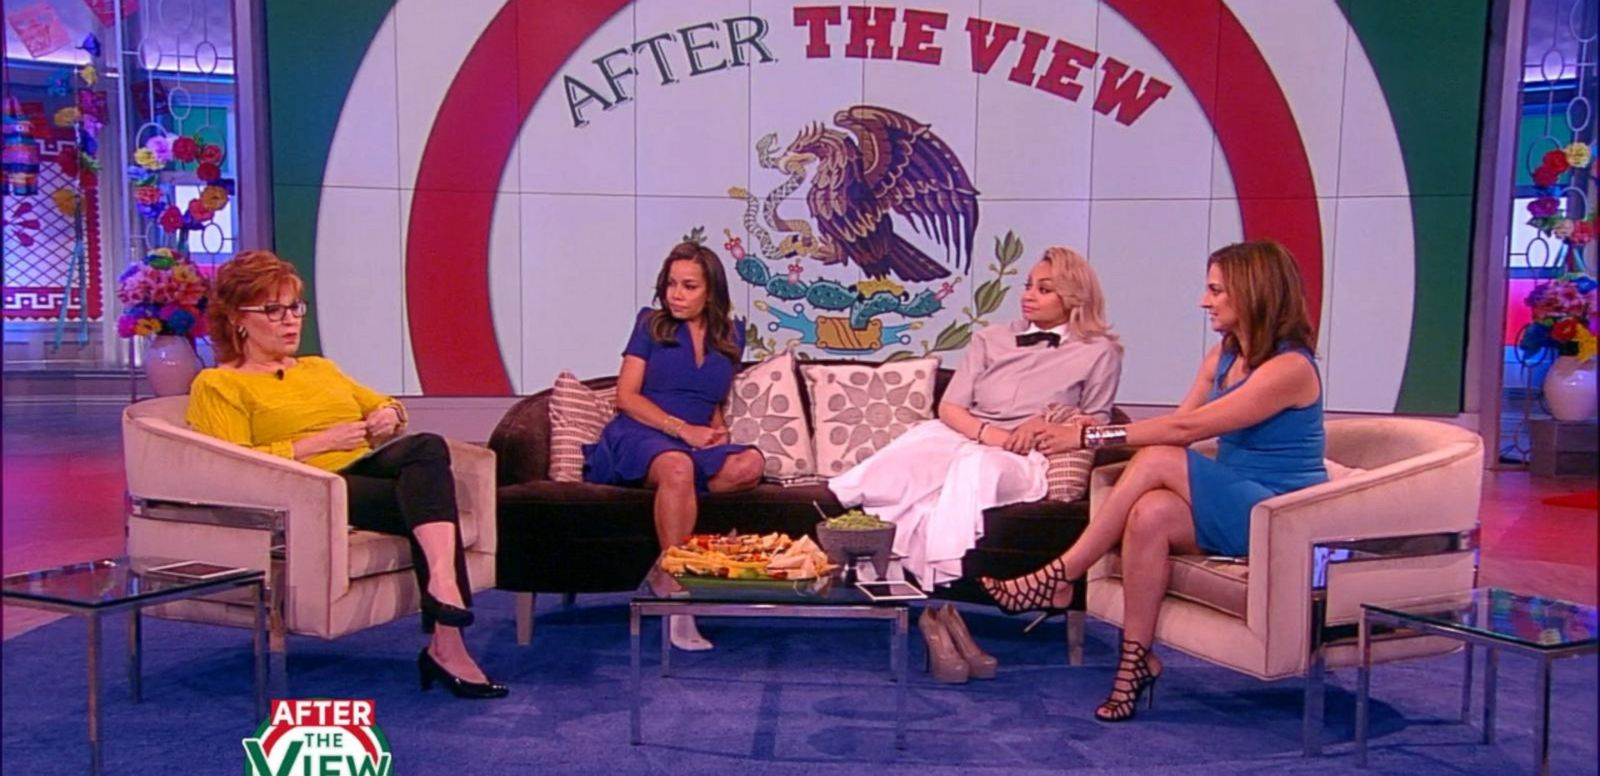 VIDEO: 'After The View': May 5, 2016